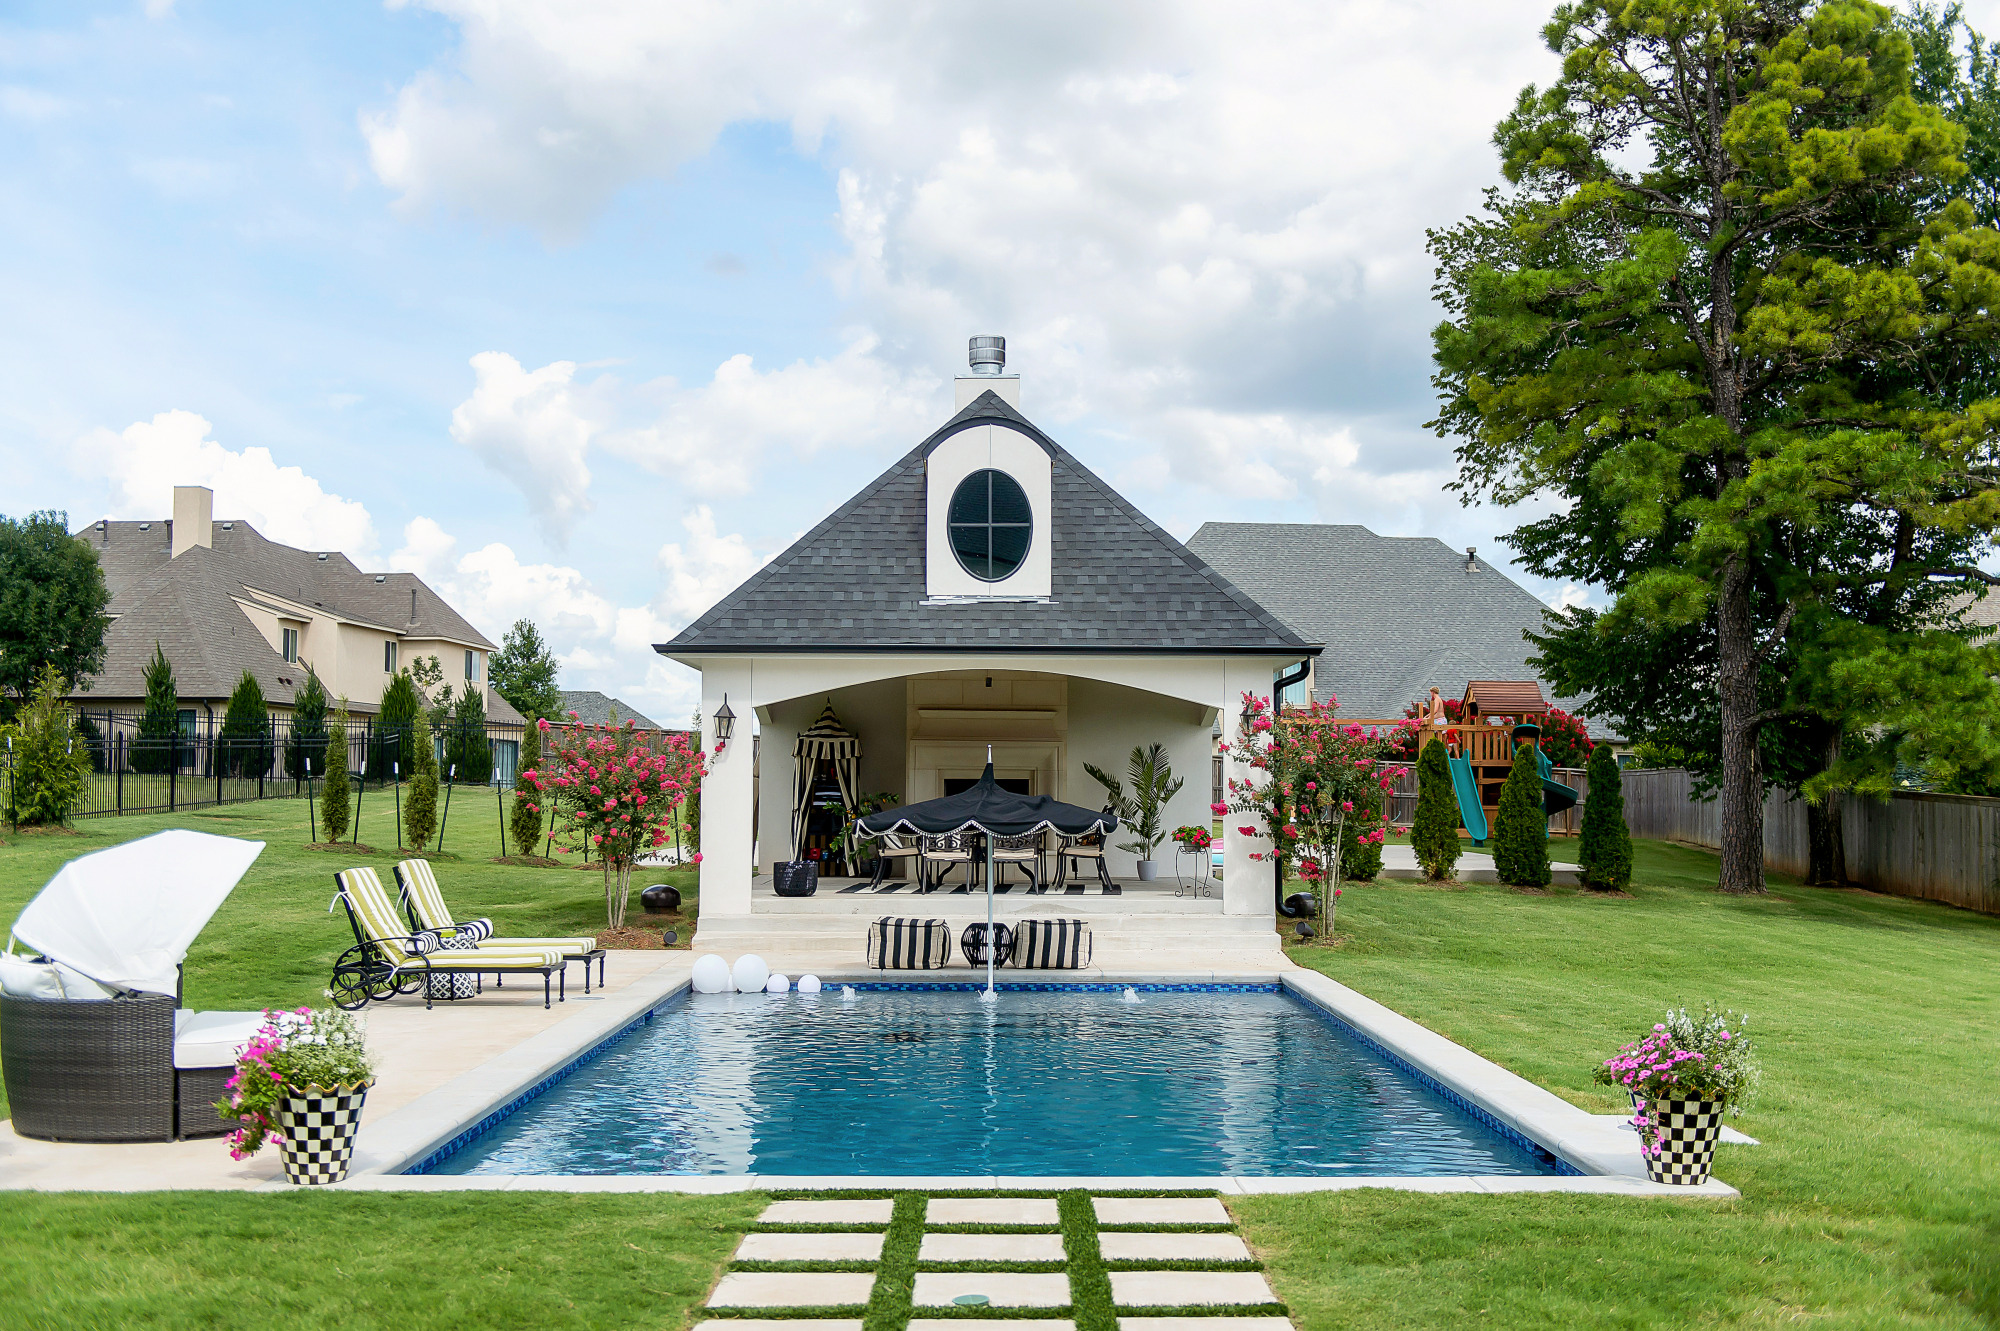 Blog Design by popular US lifestyle blog, The Sweetest Thing: image of a outdoor swimming pool with a pool house.